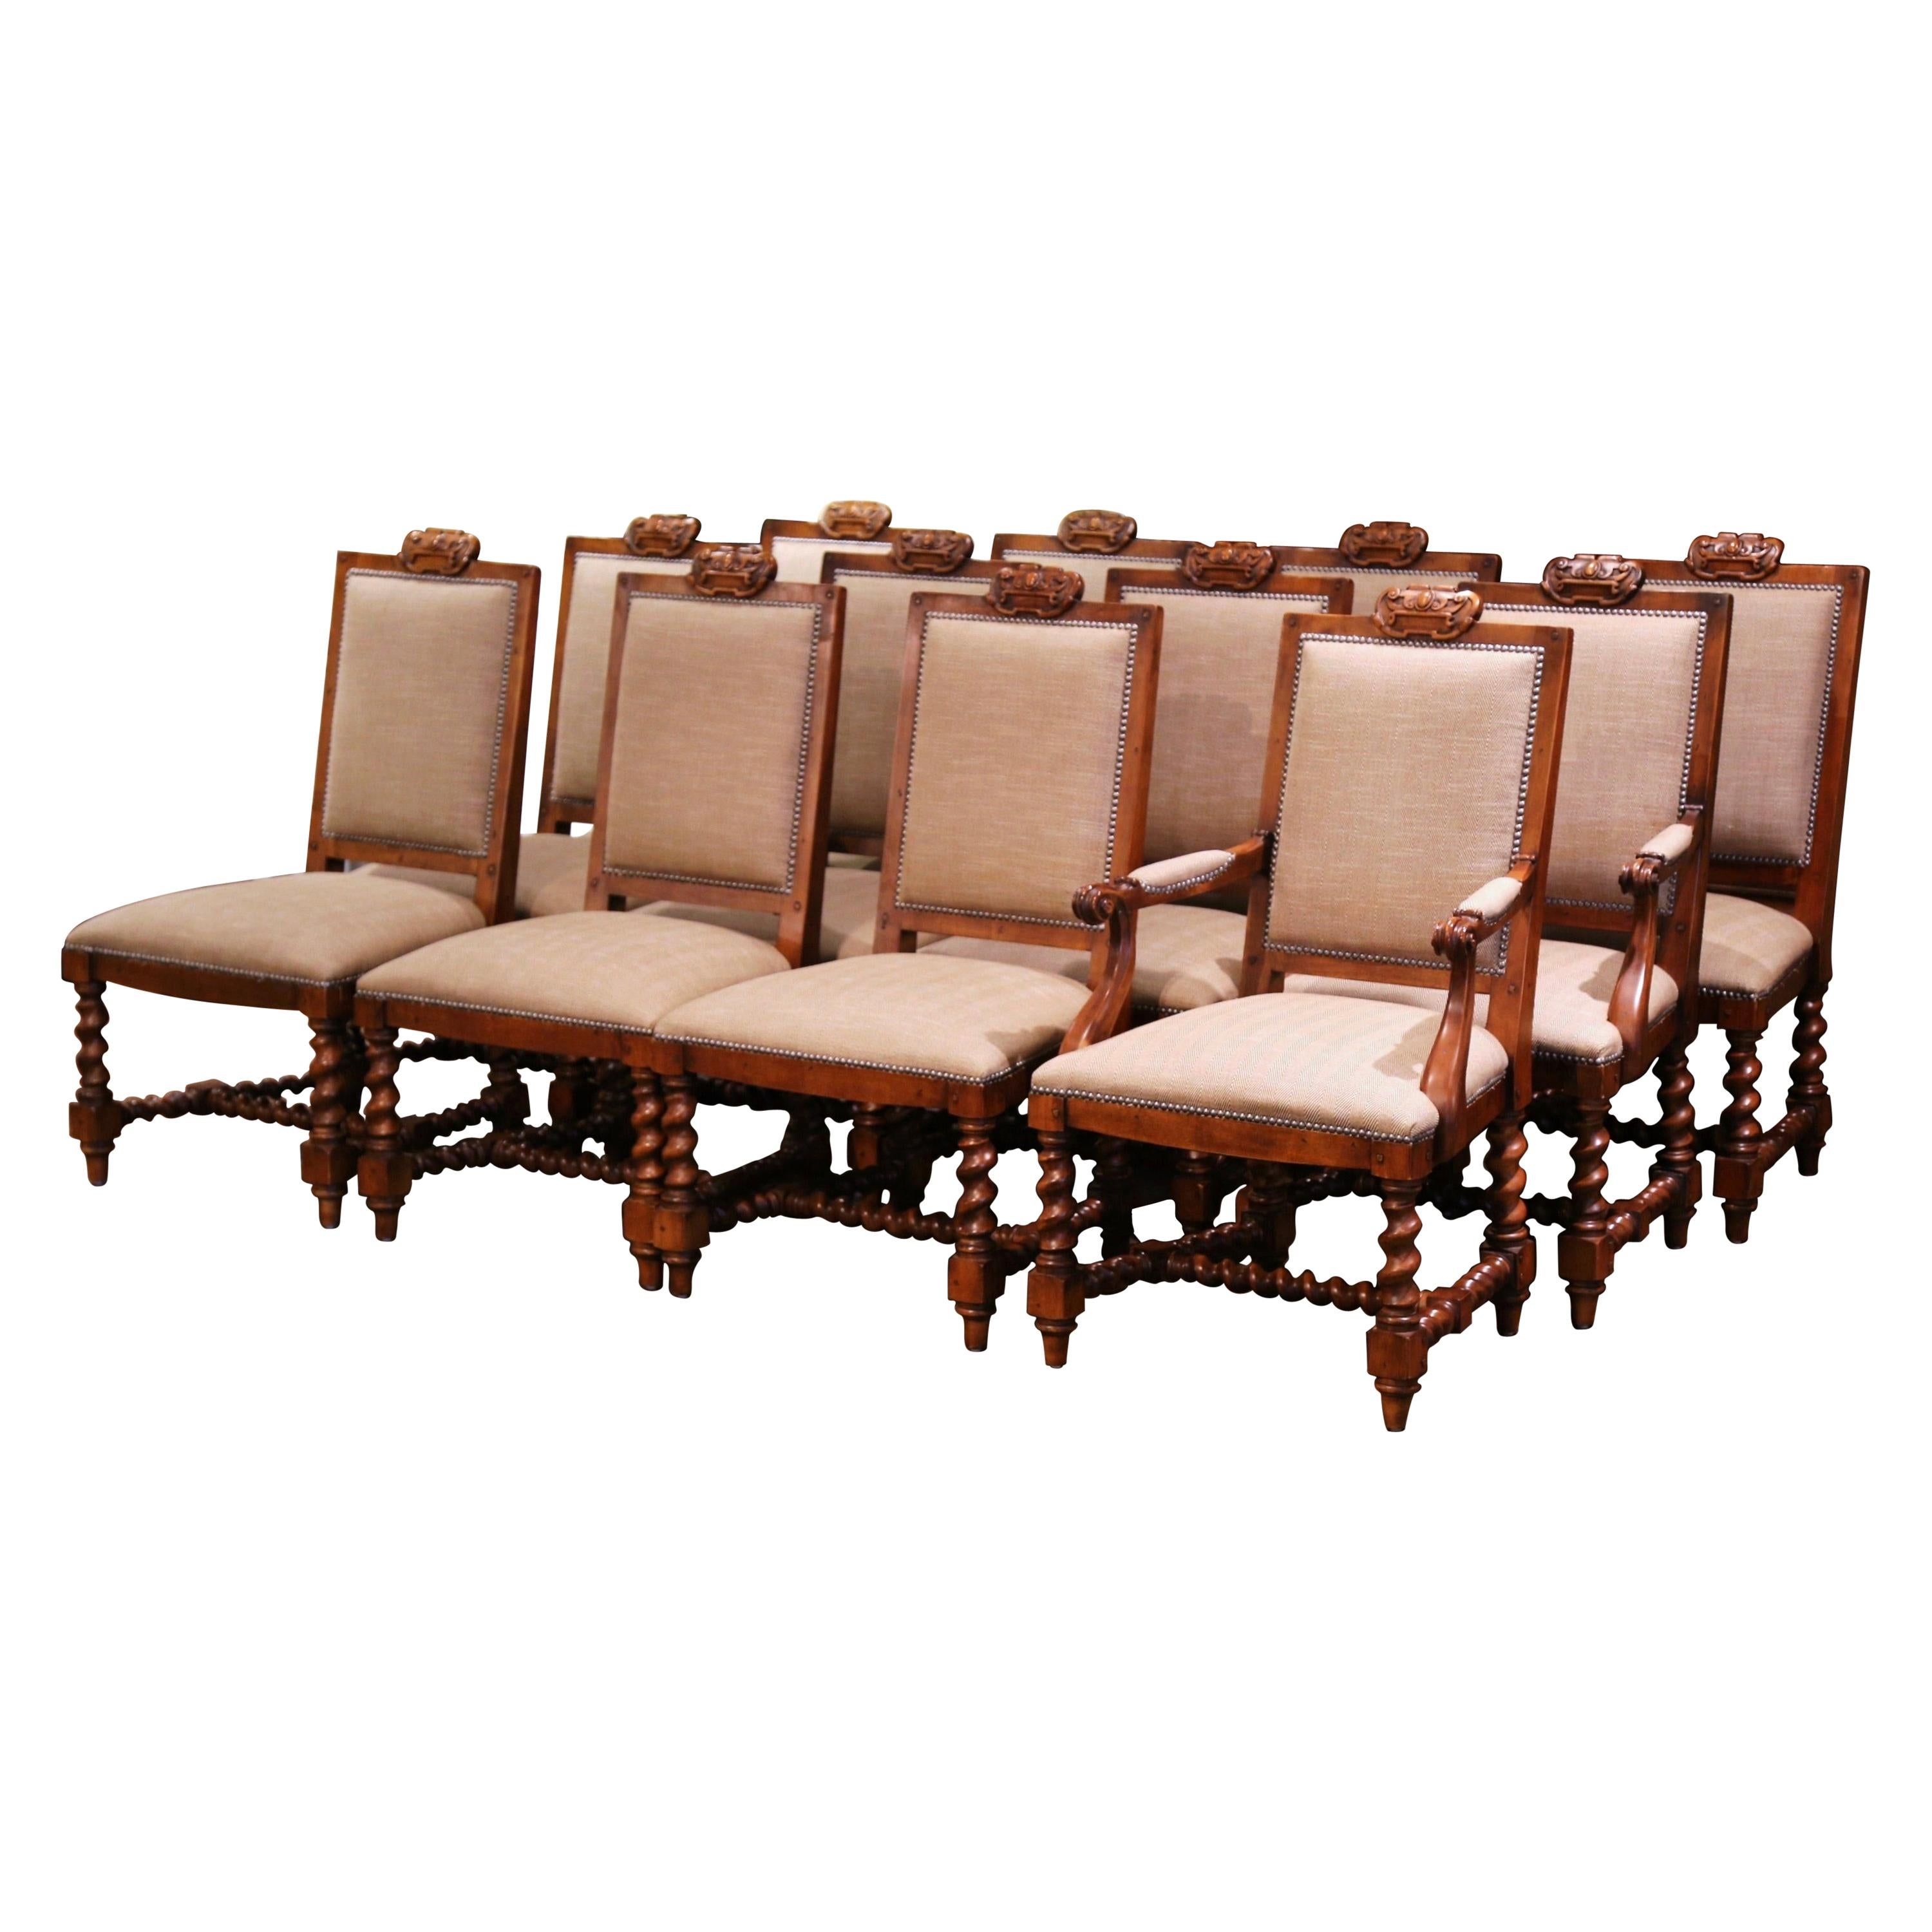 Suite of Twelve Carved Walnut Chairs from Ralph Lauren with Chenille and Leather